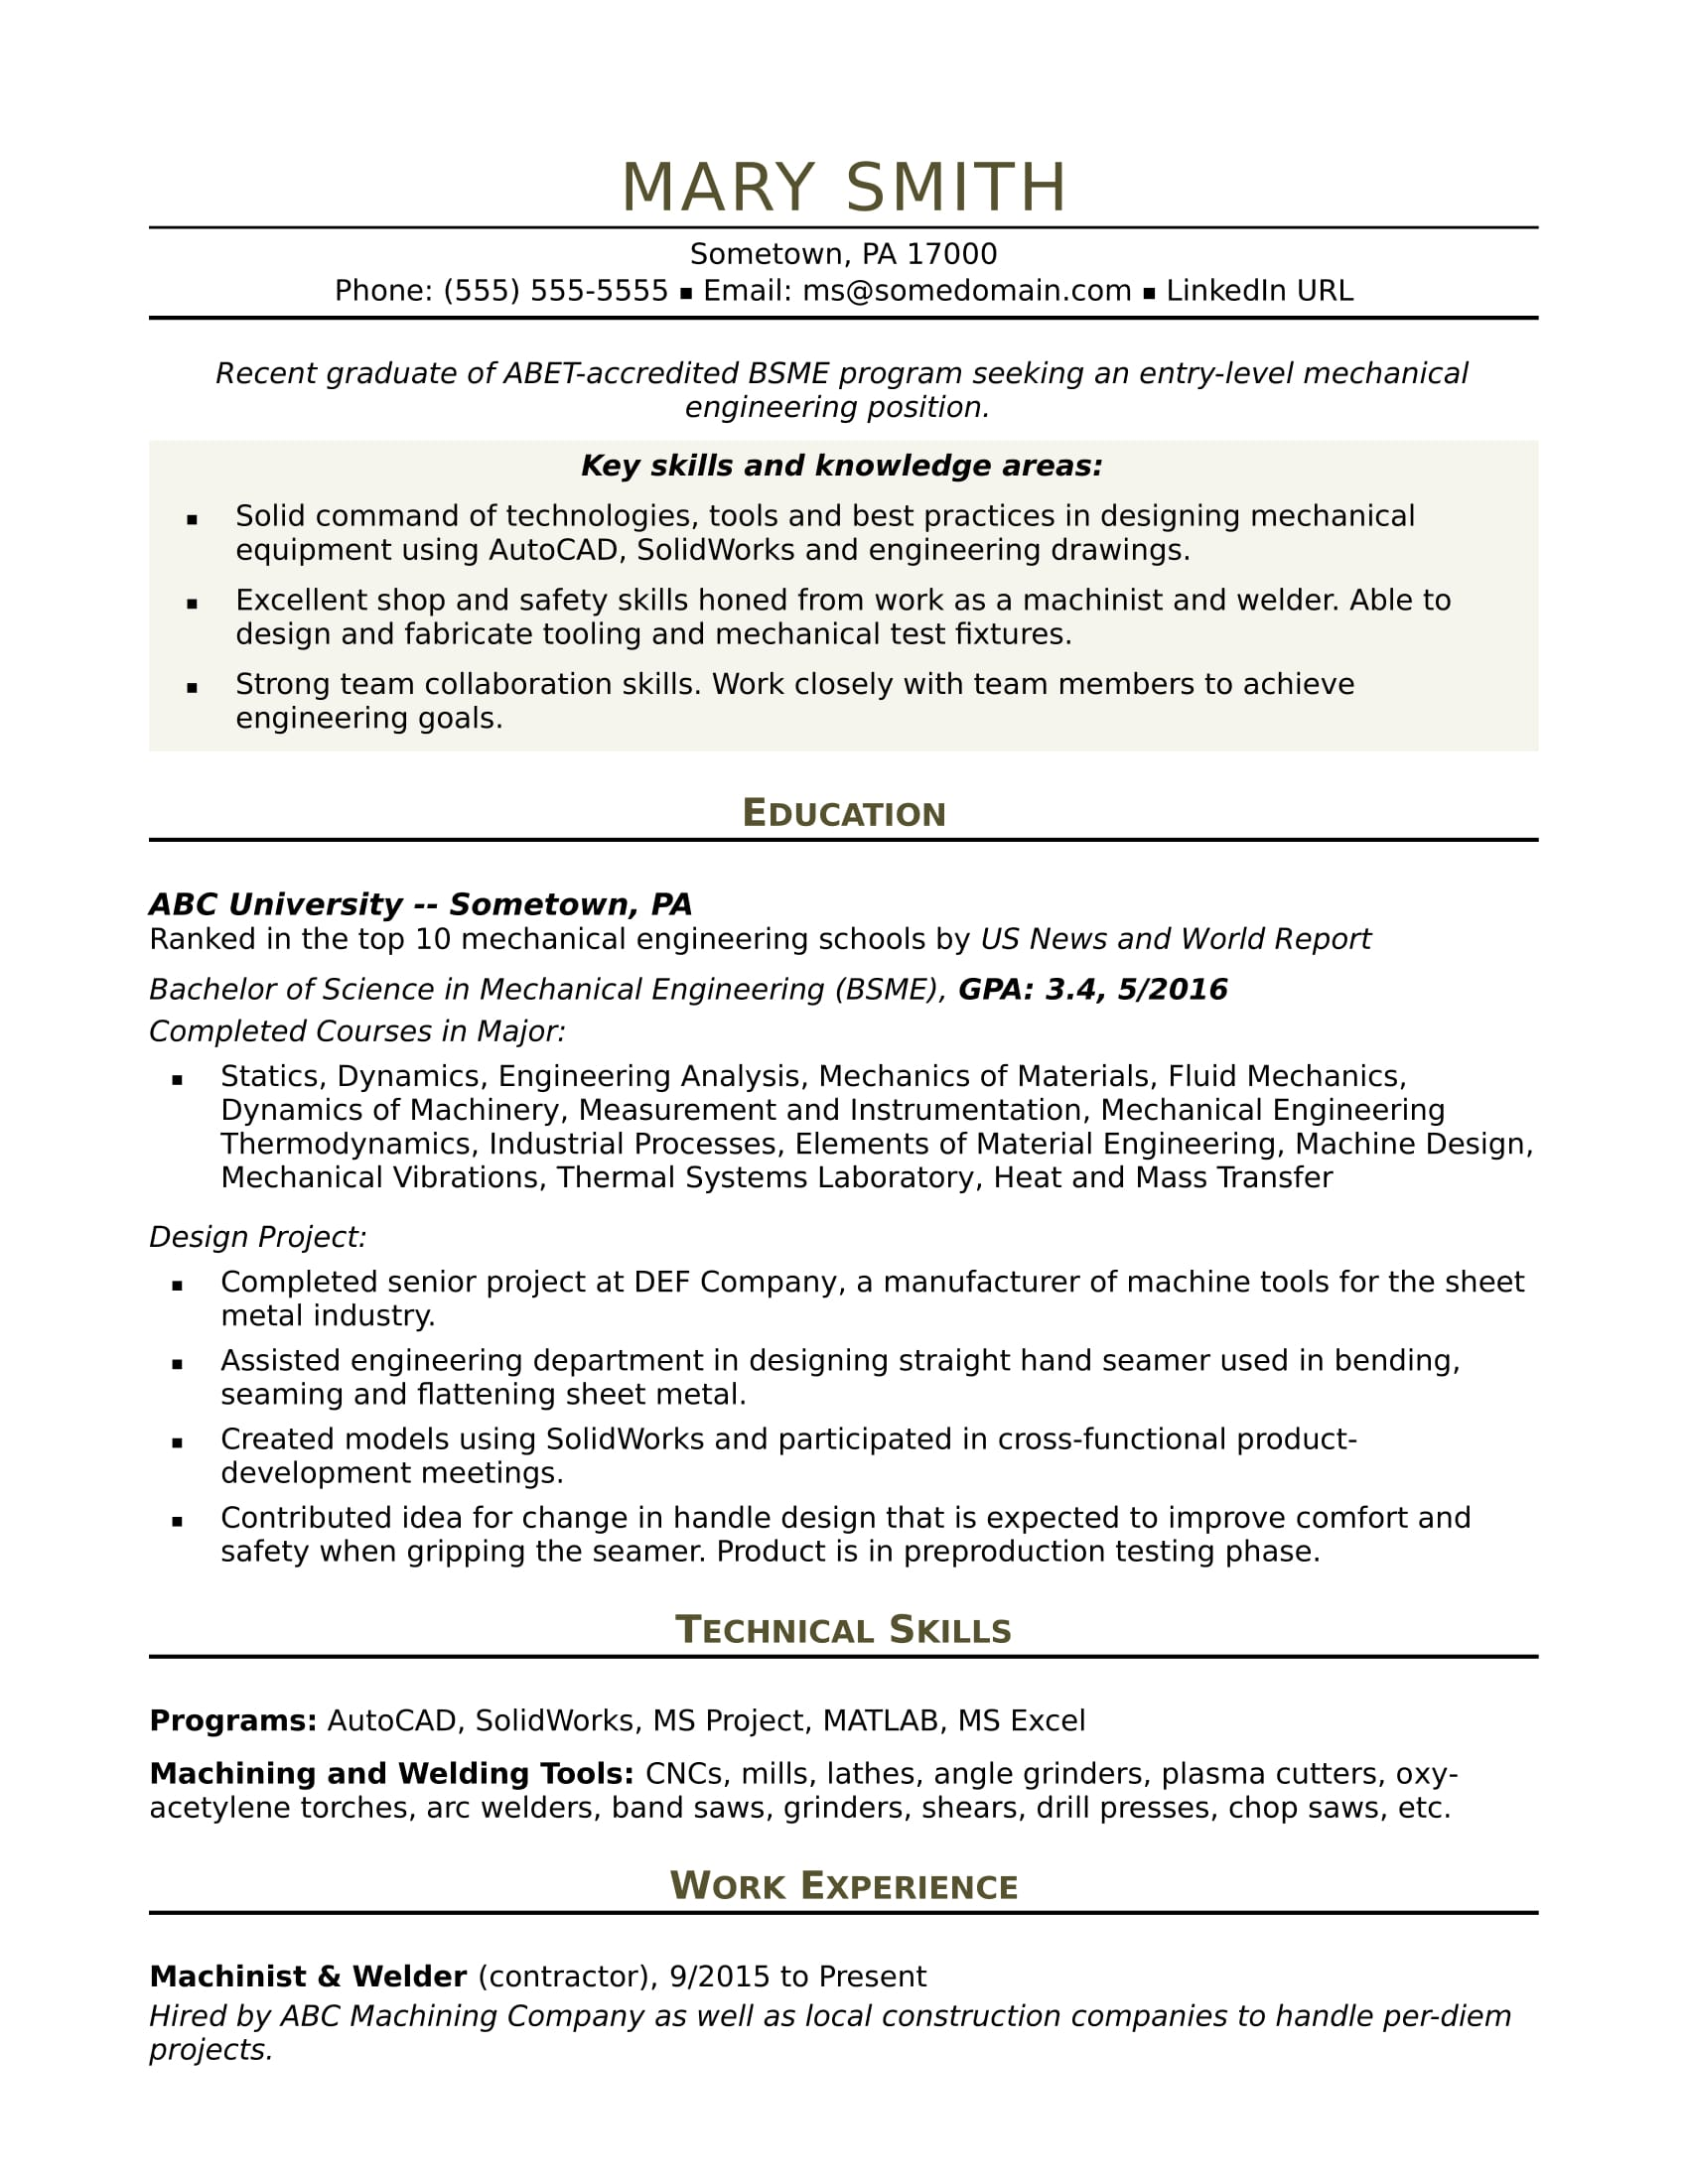 Sample Resume For An Entry Level Mechanical Engineer Monster